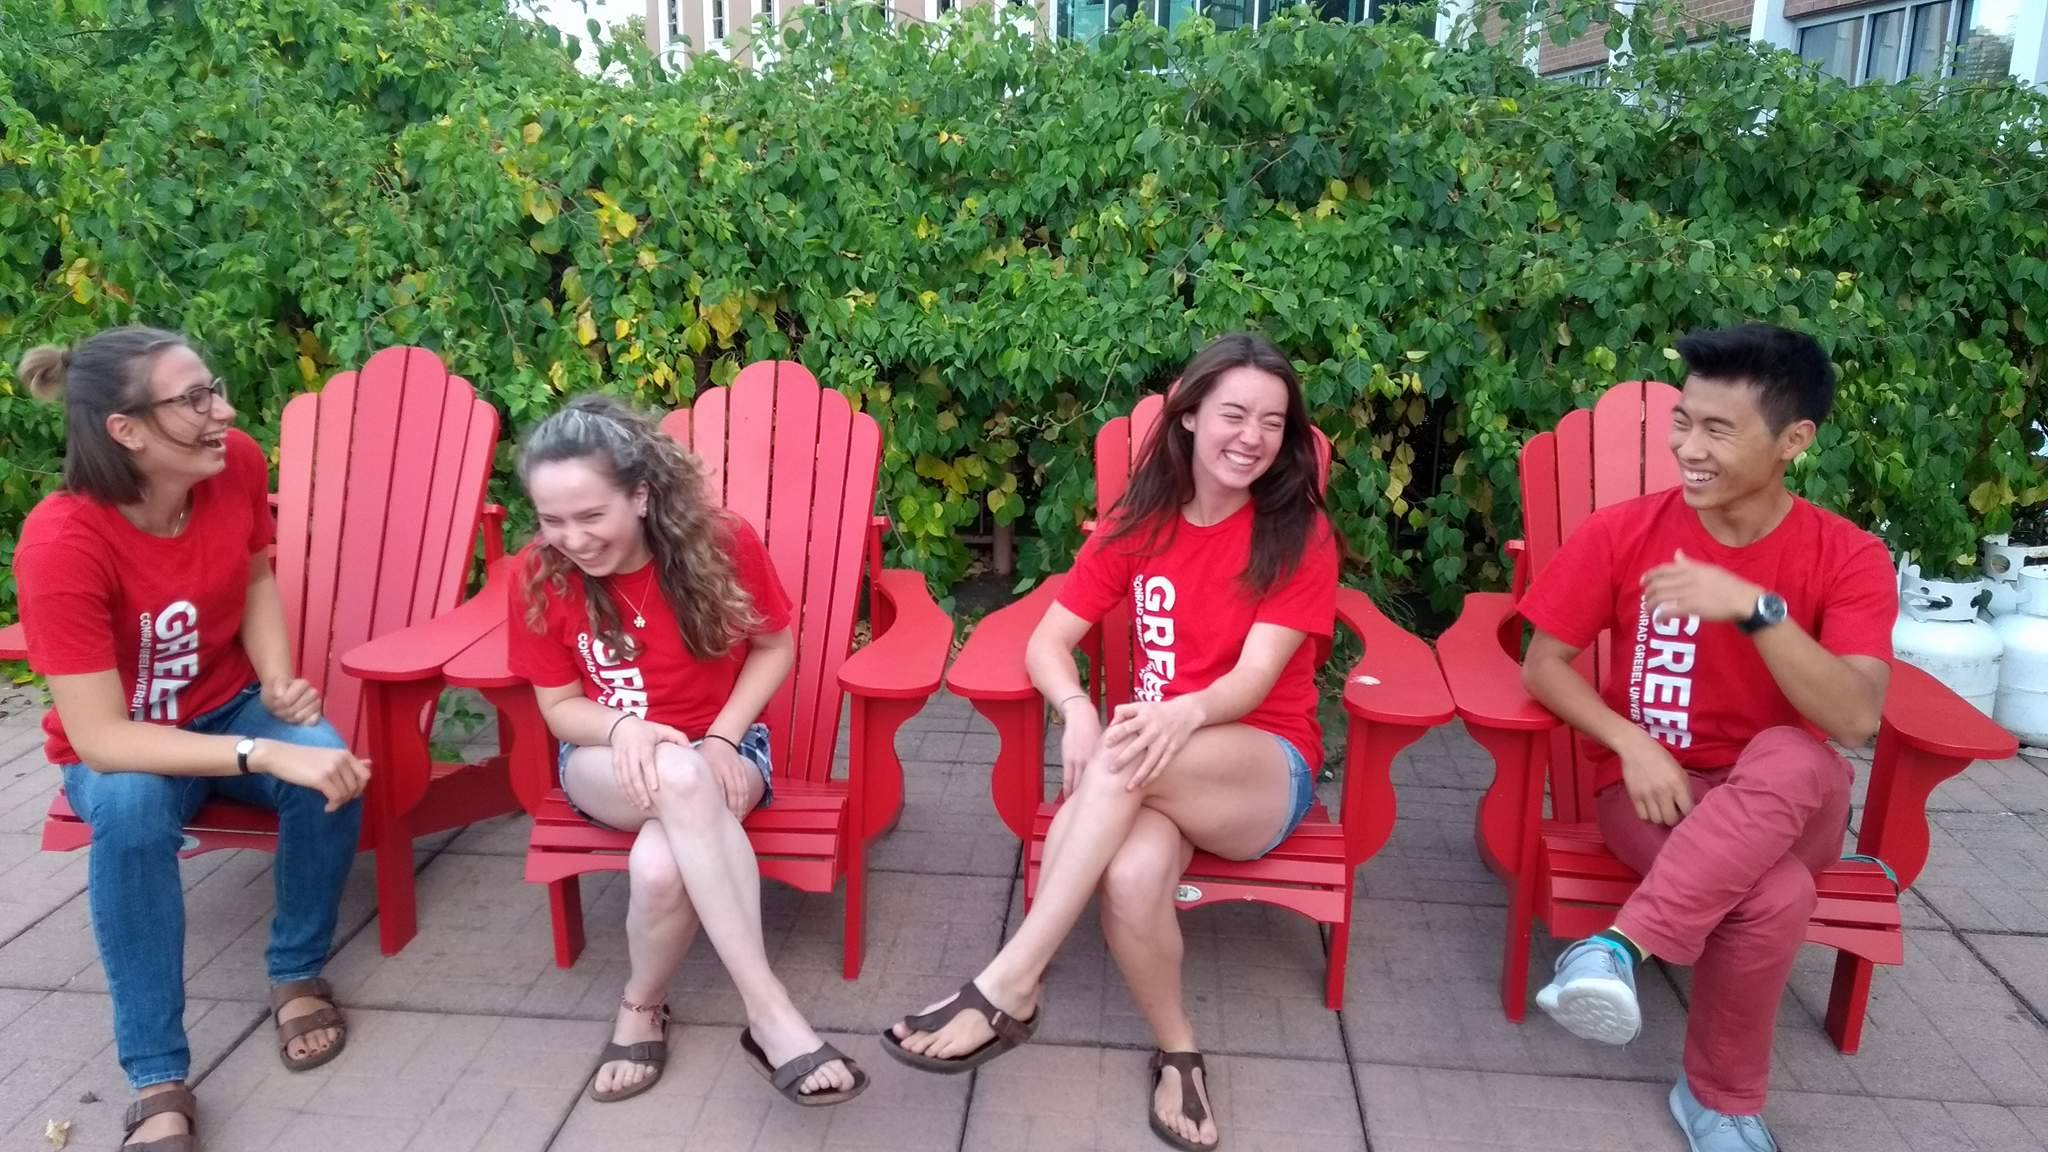 Grebelites sitting on Muskoka chairs